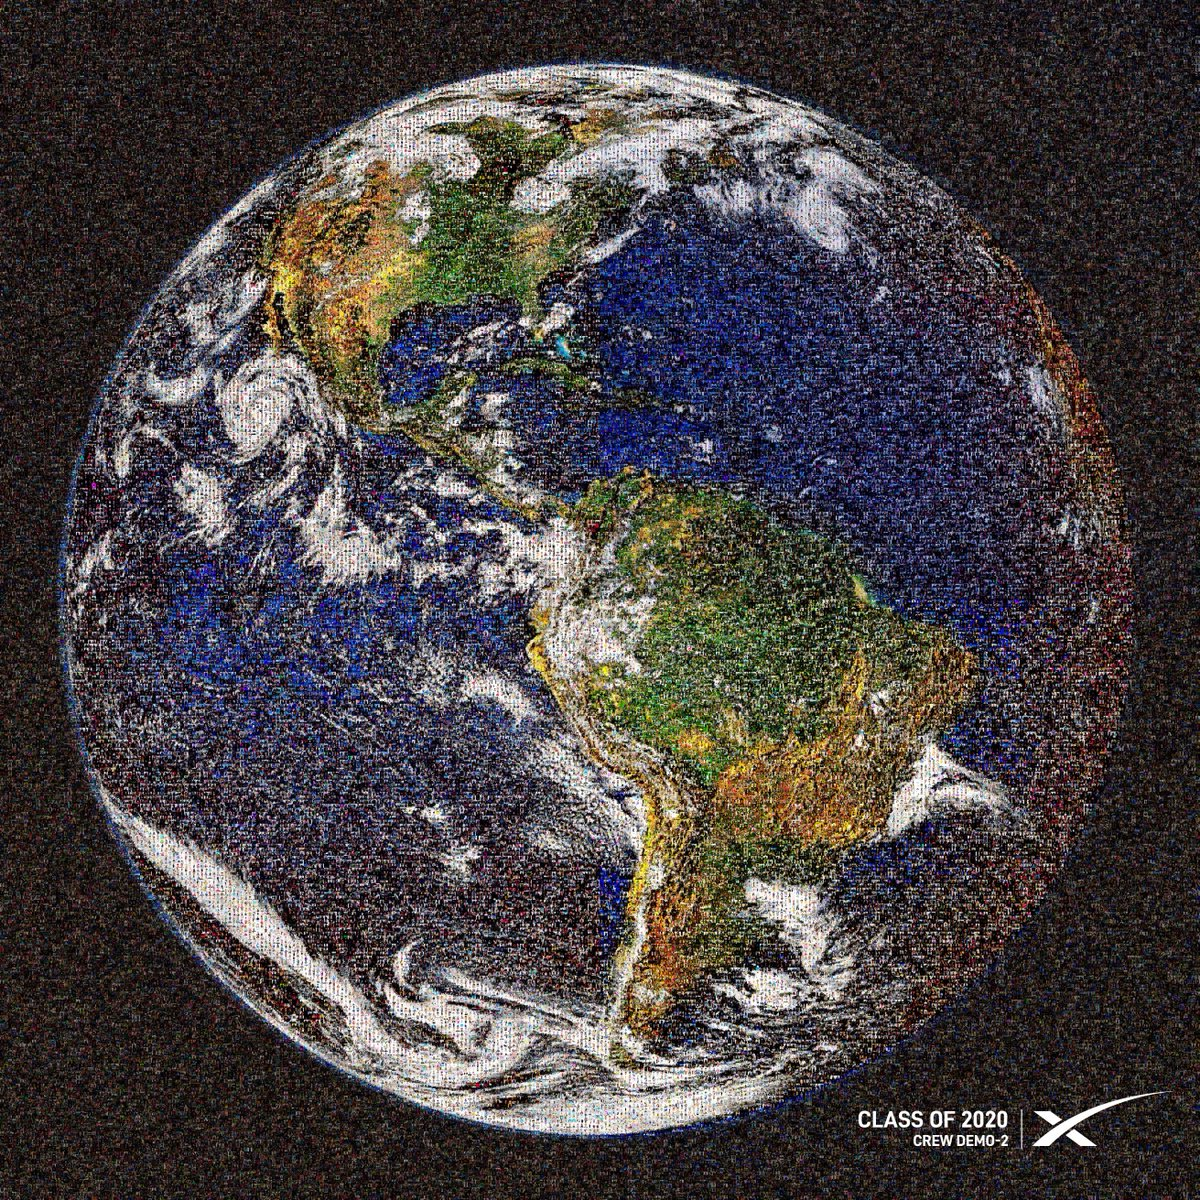 mosaic of earth made of 2020 graduate photos